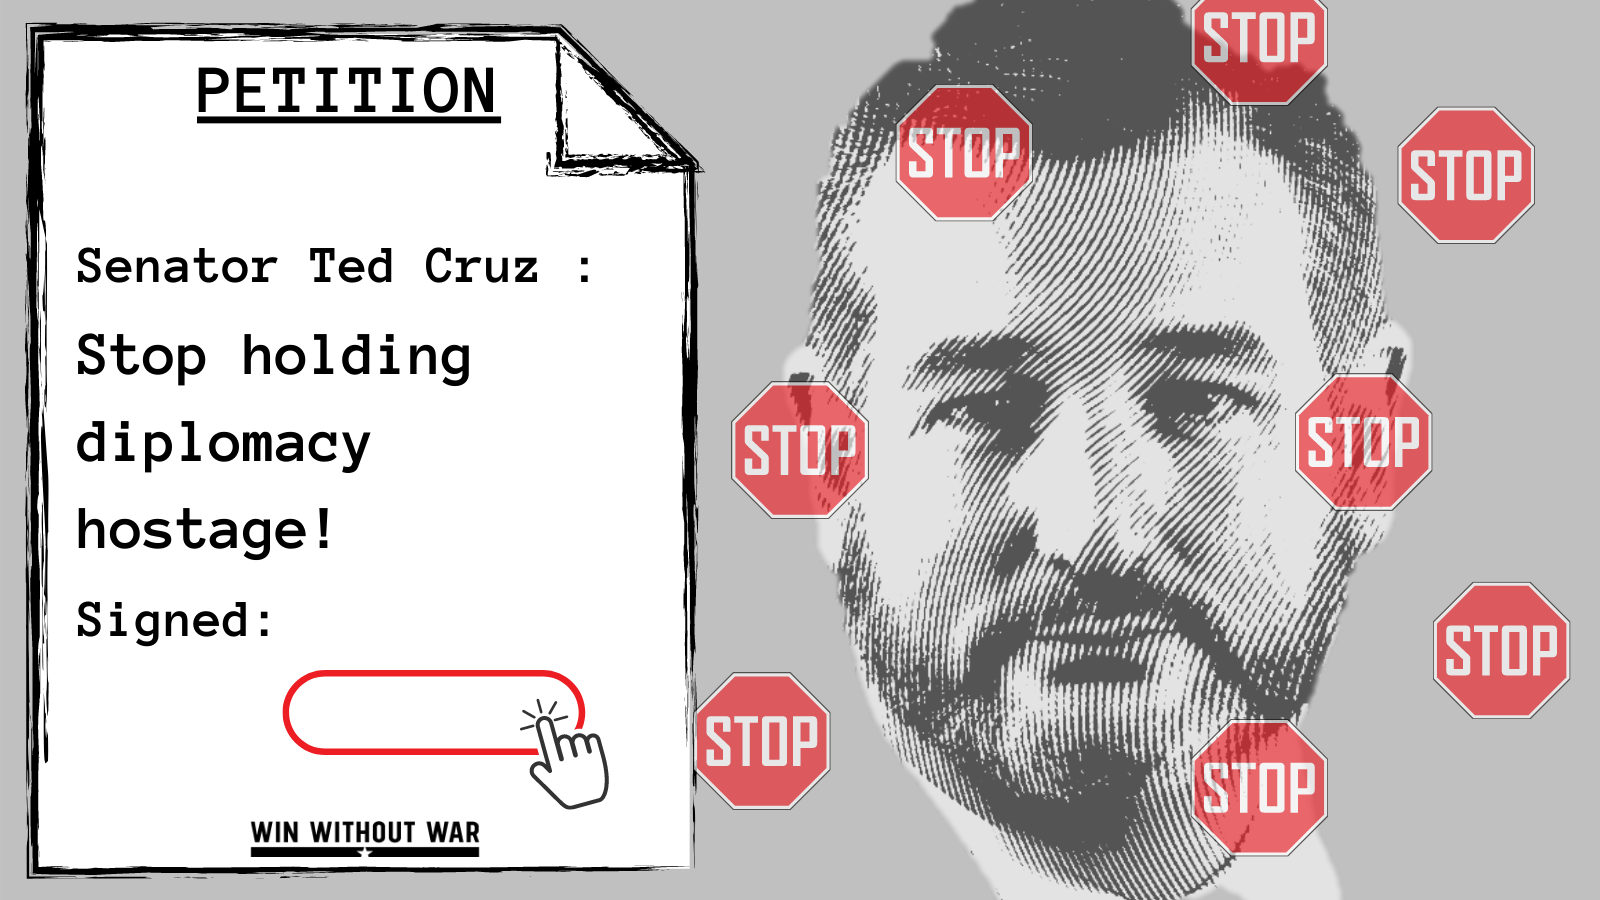 Tell Ted Cruz: No more obstruction!